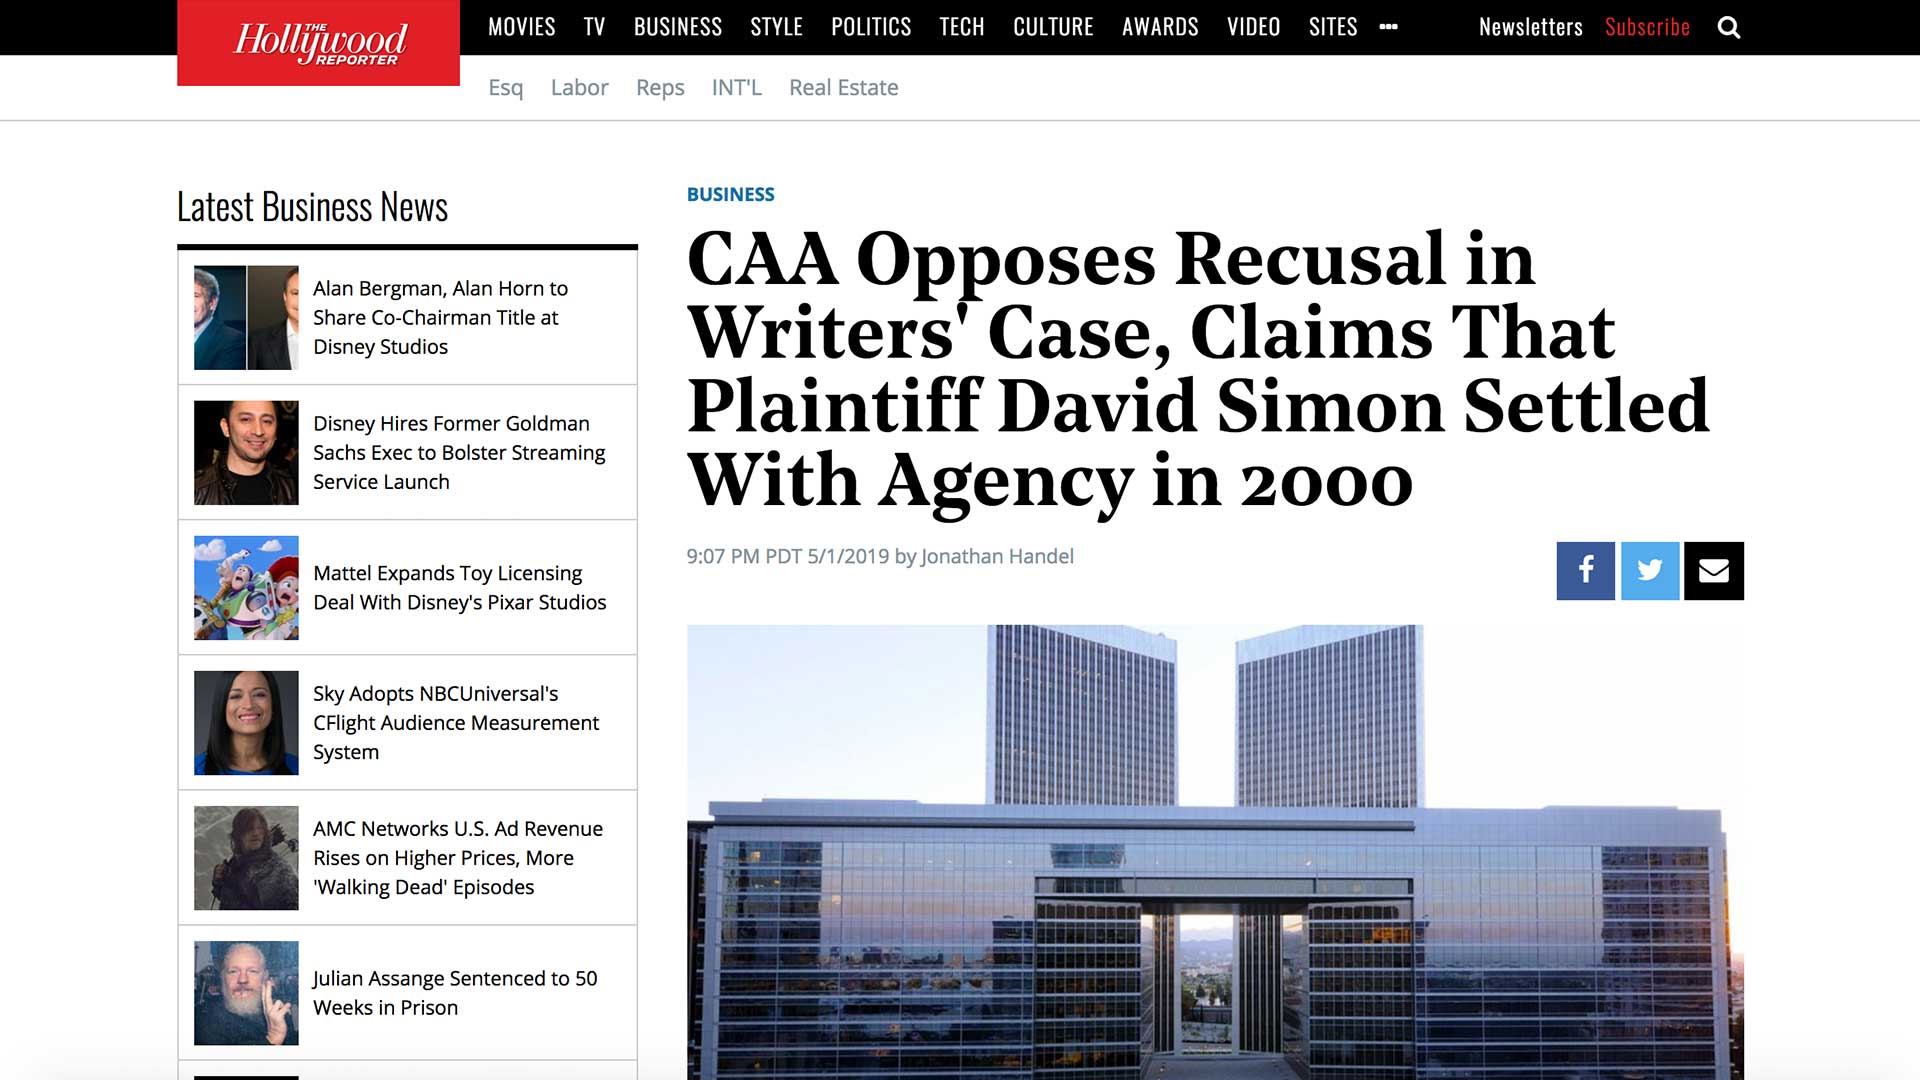 Fairness Rocks News CAA Opposes Recusal in Writers' Case, Claims That Plaintiff David Simon Settled With Agency in 2000